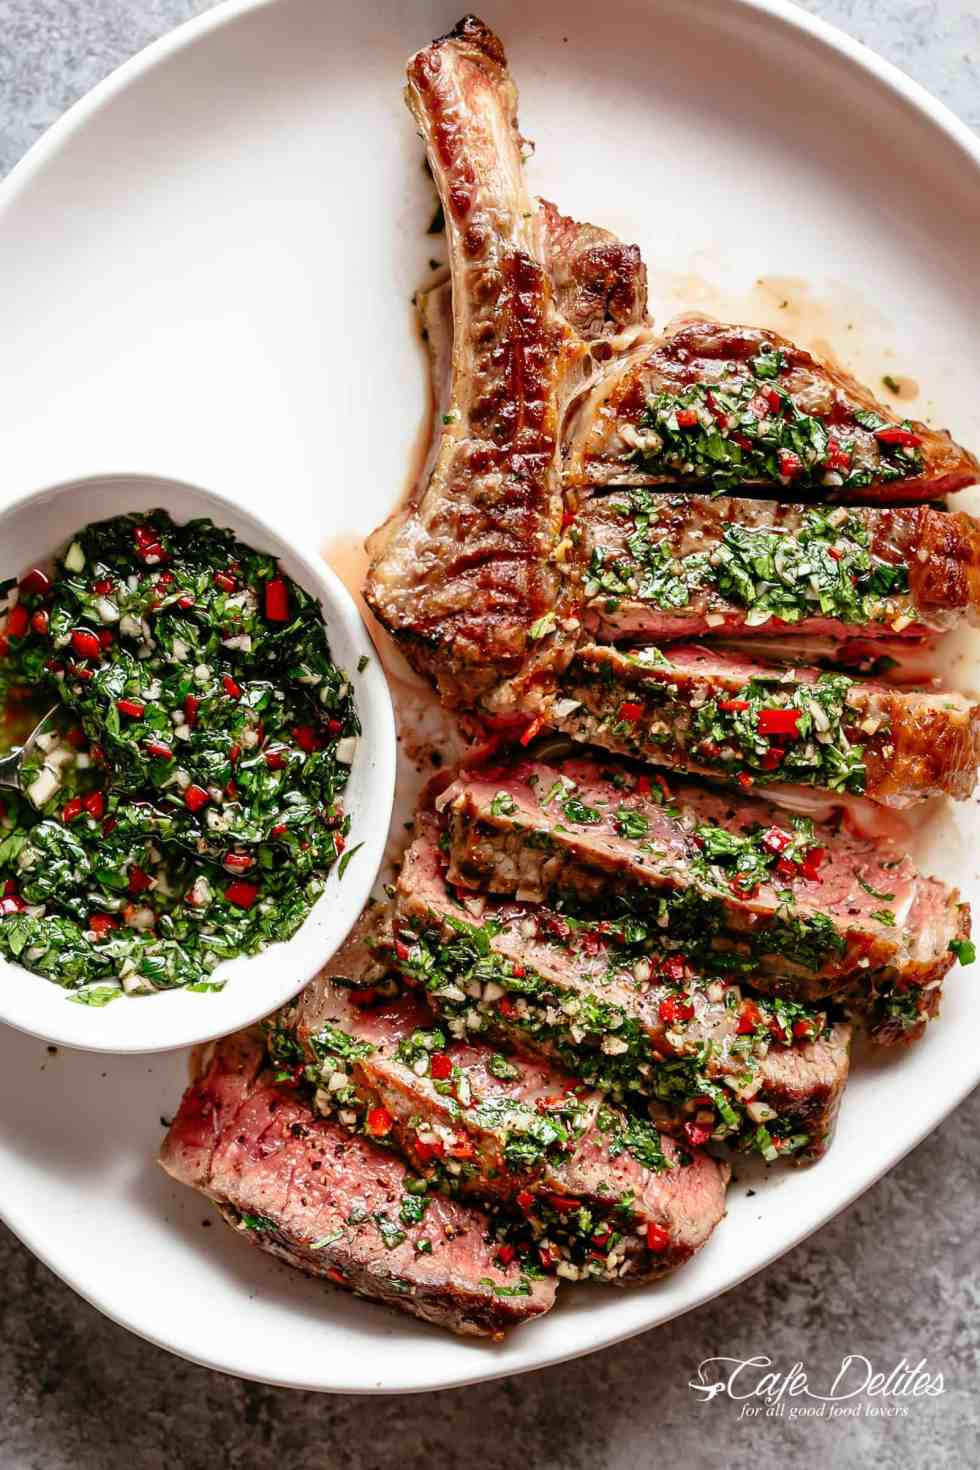 Steaks with Chimichurri! The most delicious silky condiment that drips over your steak   cafedelites.com